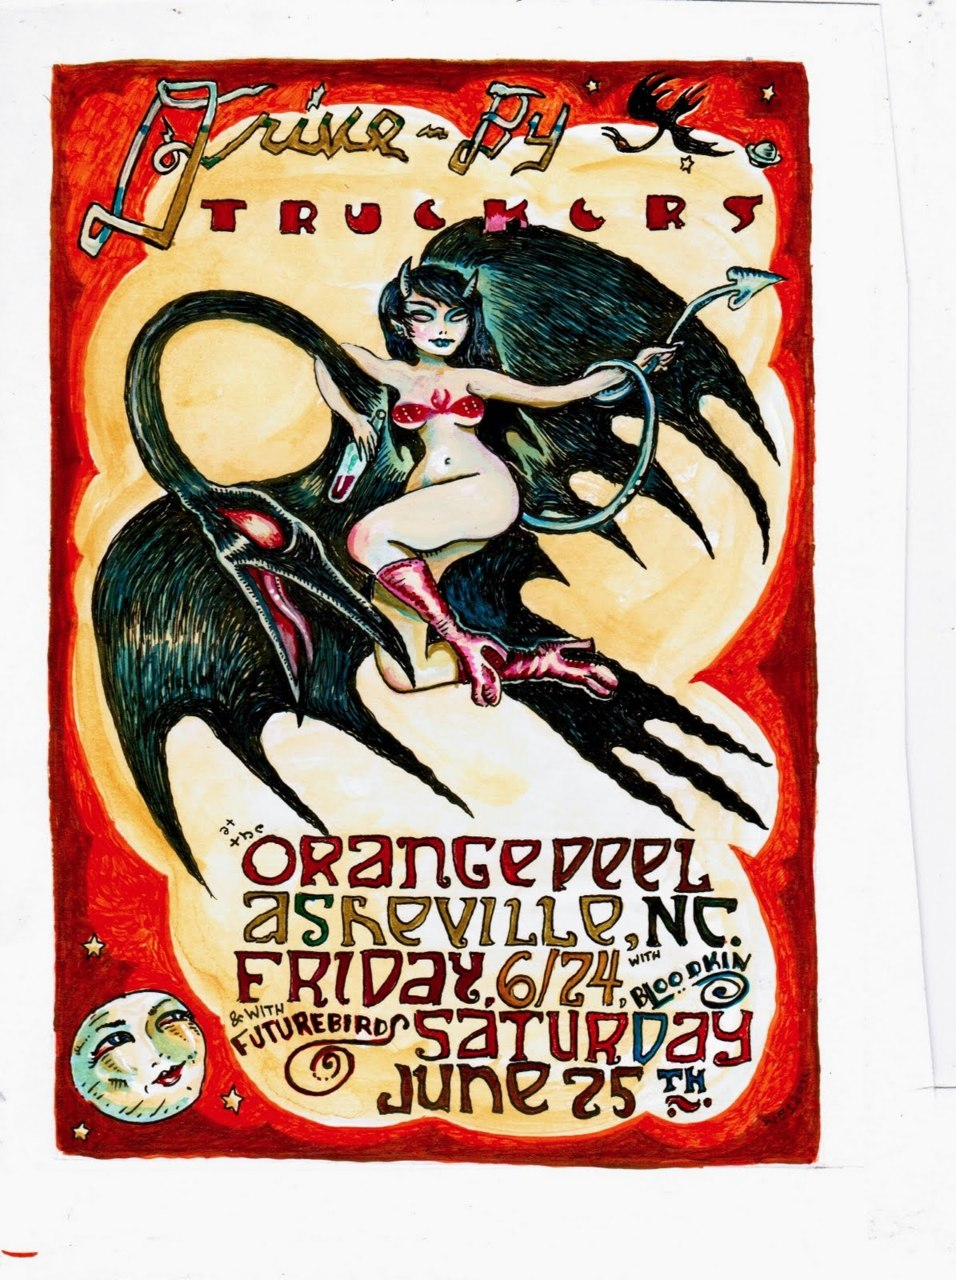 DBT Gig poster, 2011